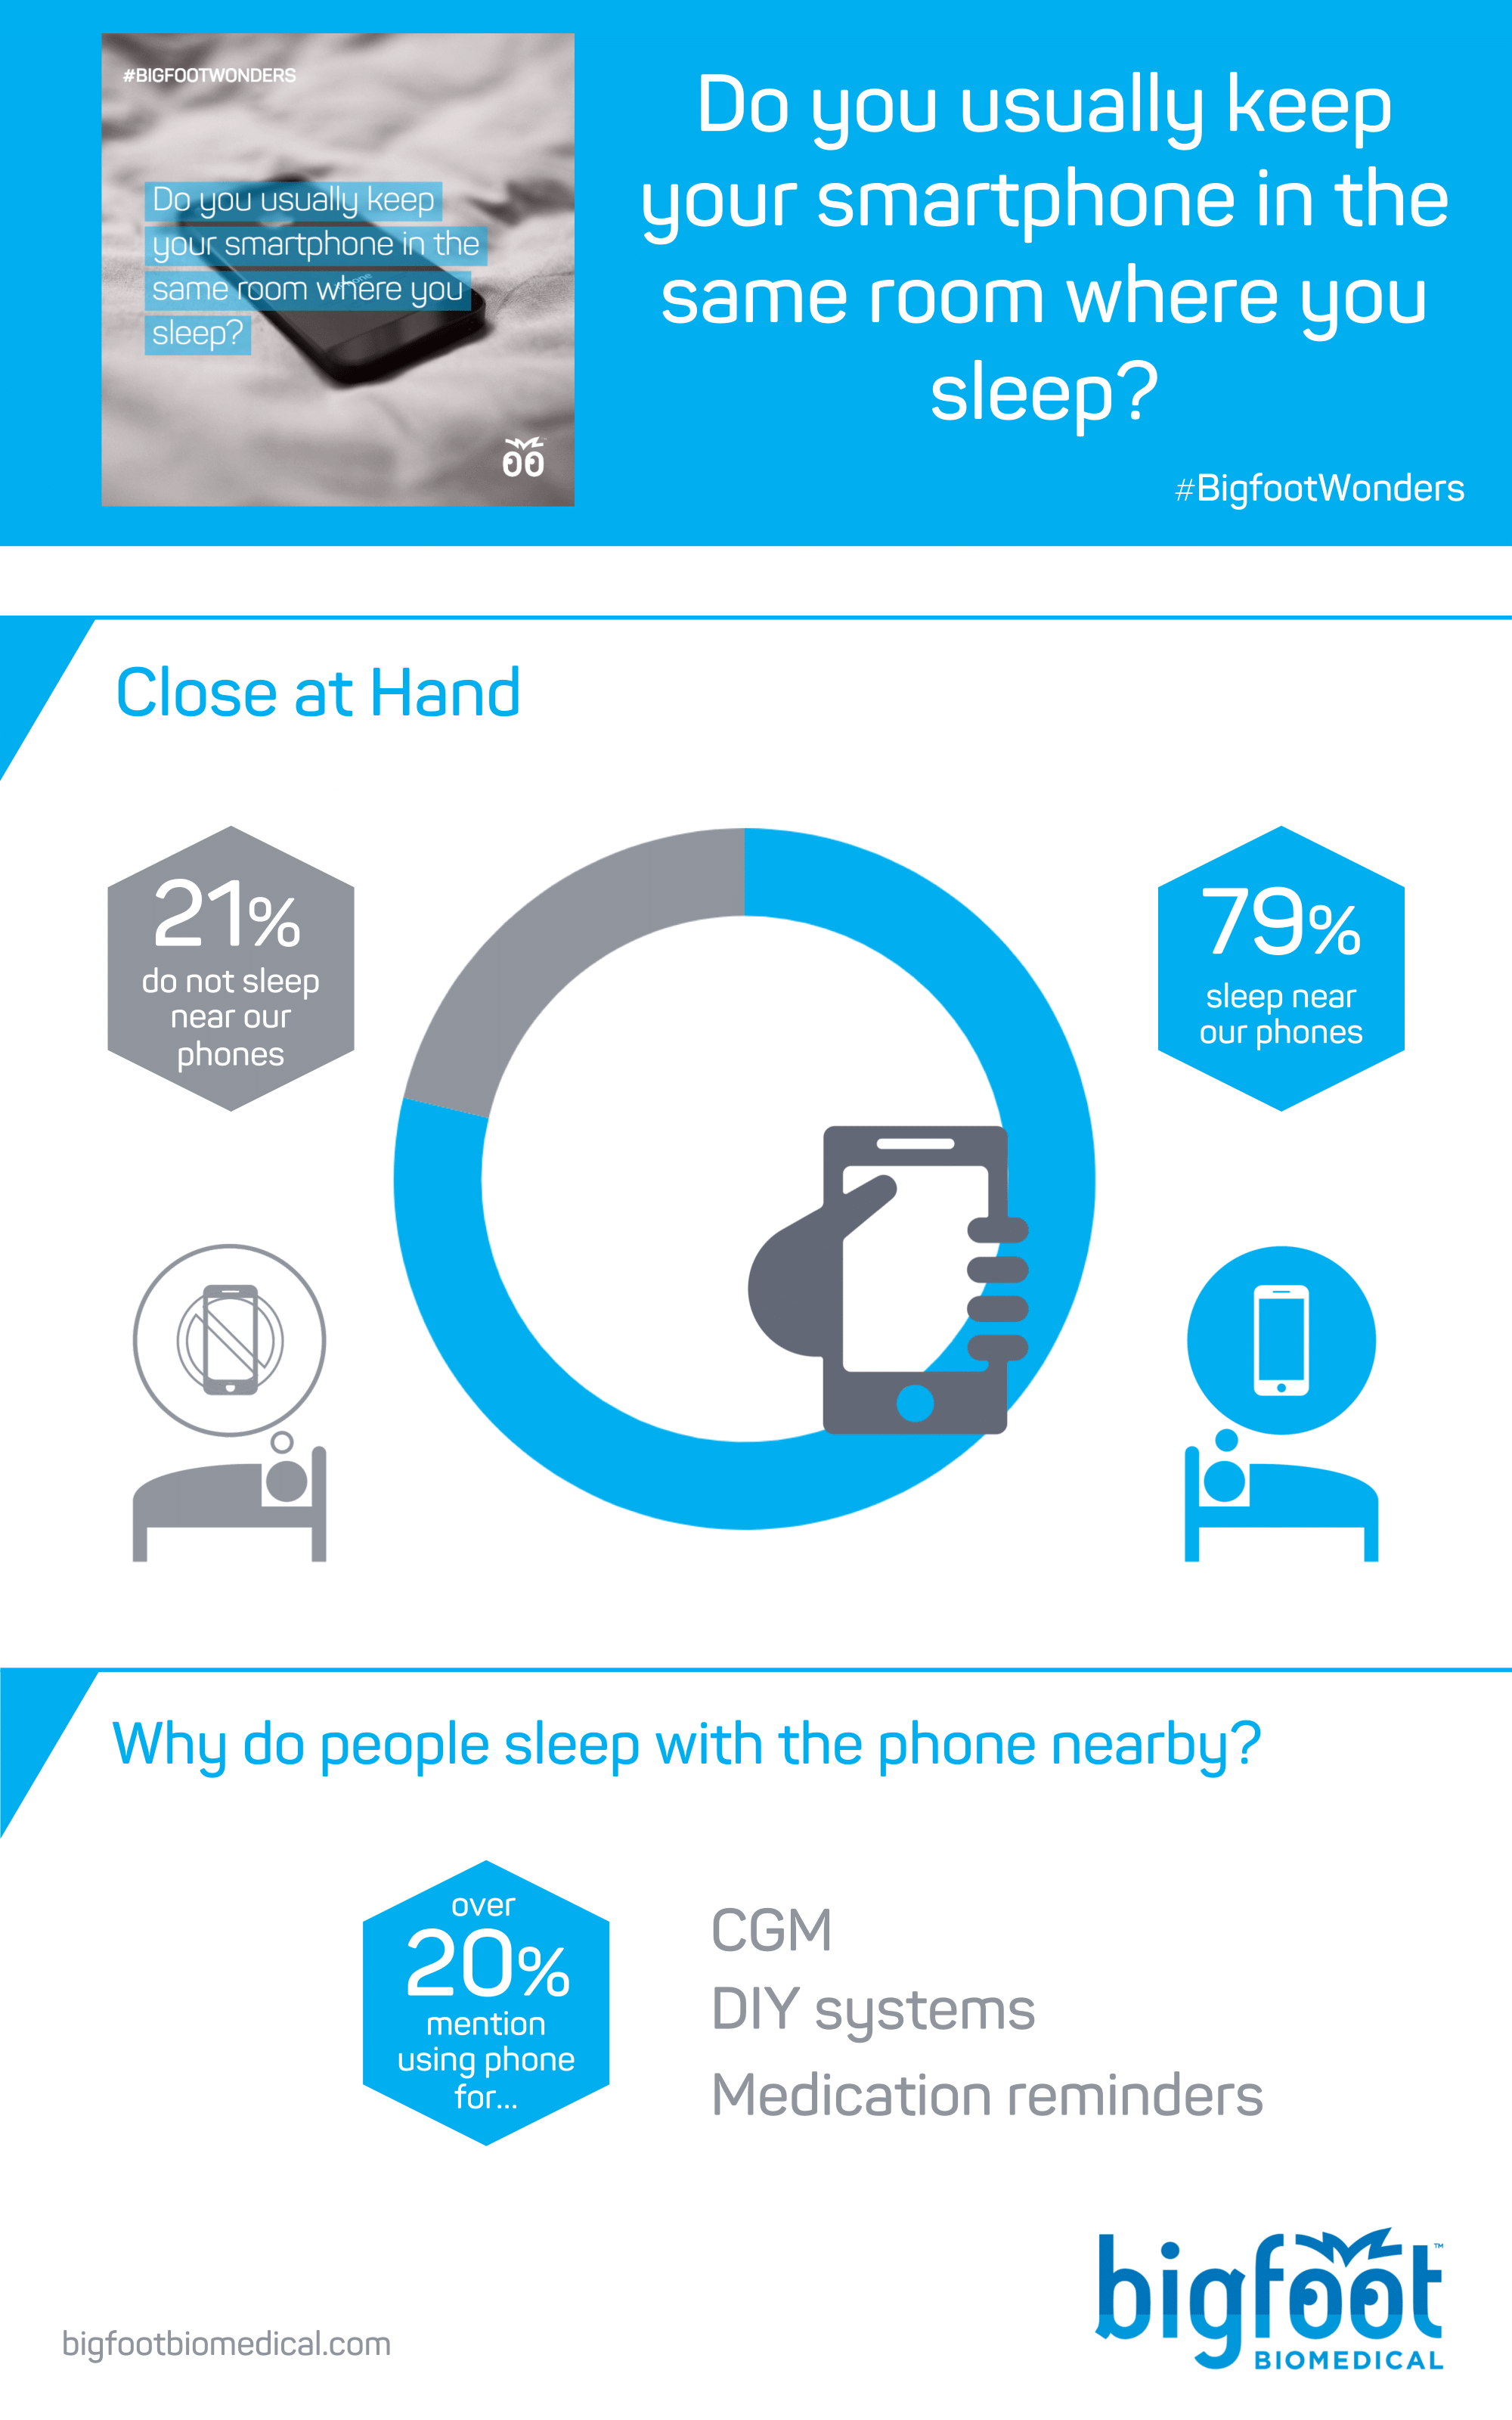 79% of people reported sleeping near their smartphones, while 21% reported having their smartphones in another room. Over 20% said that their smartphone was used for their CGM or DIY system.